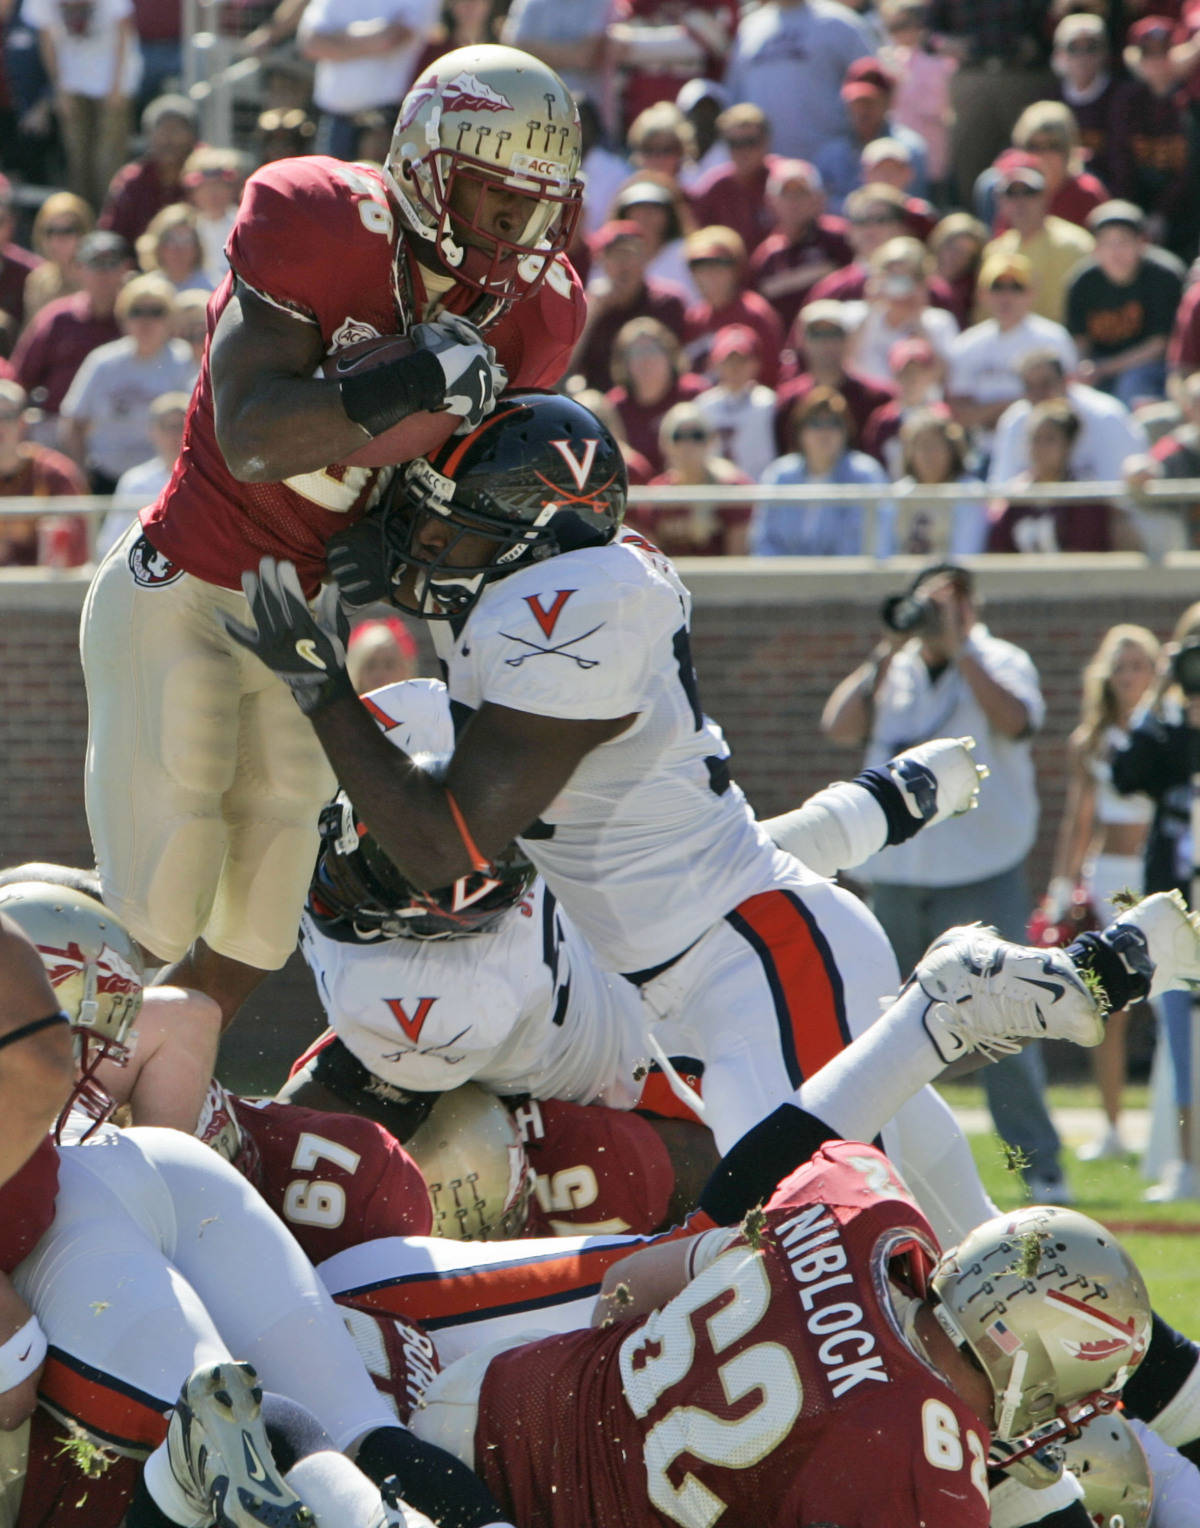 Florida State's Lorenzo Booker scores a first-quarter touchdown over Virginia's Antonio Appleby during a college football game Saturday, Nov. 4, 2006, in Tallahassee, Fla. Booker's touchdown came on the play after the Seminoles blocked a Virginia punt. (AP Photo/Phil Coale)